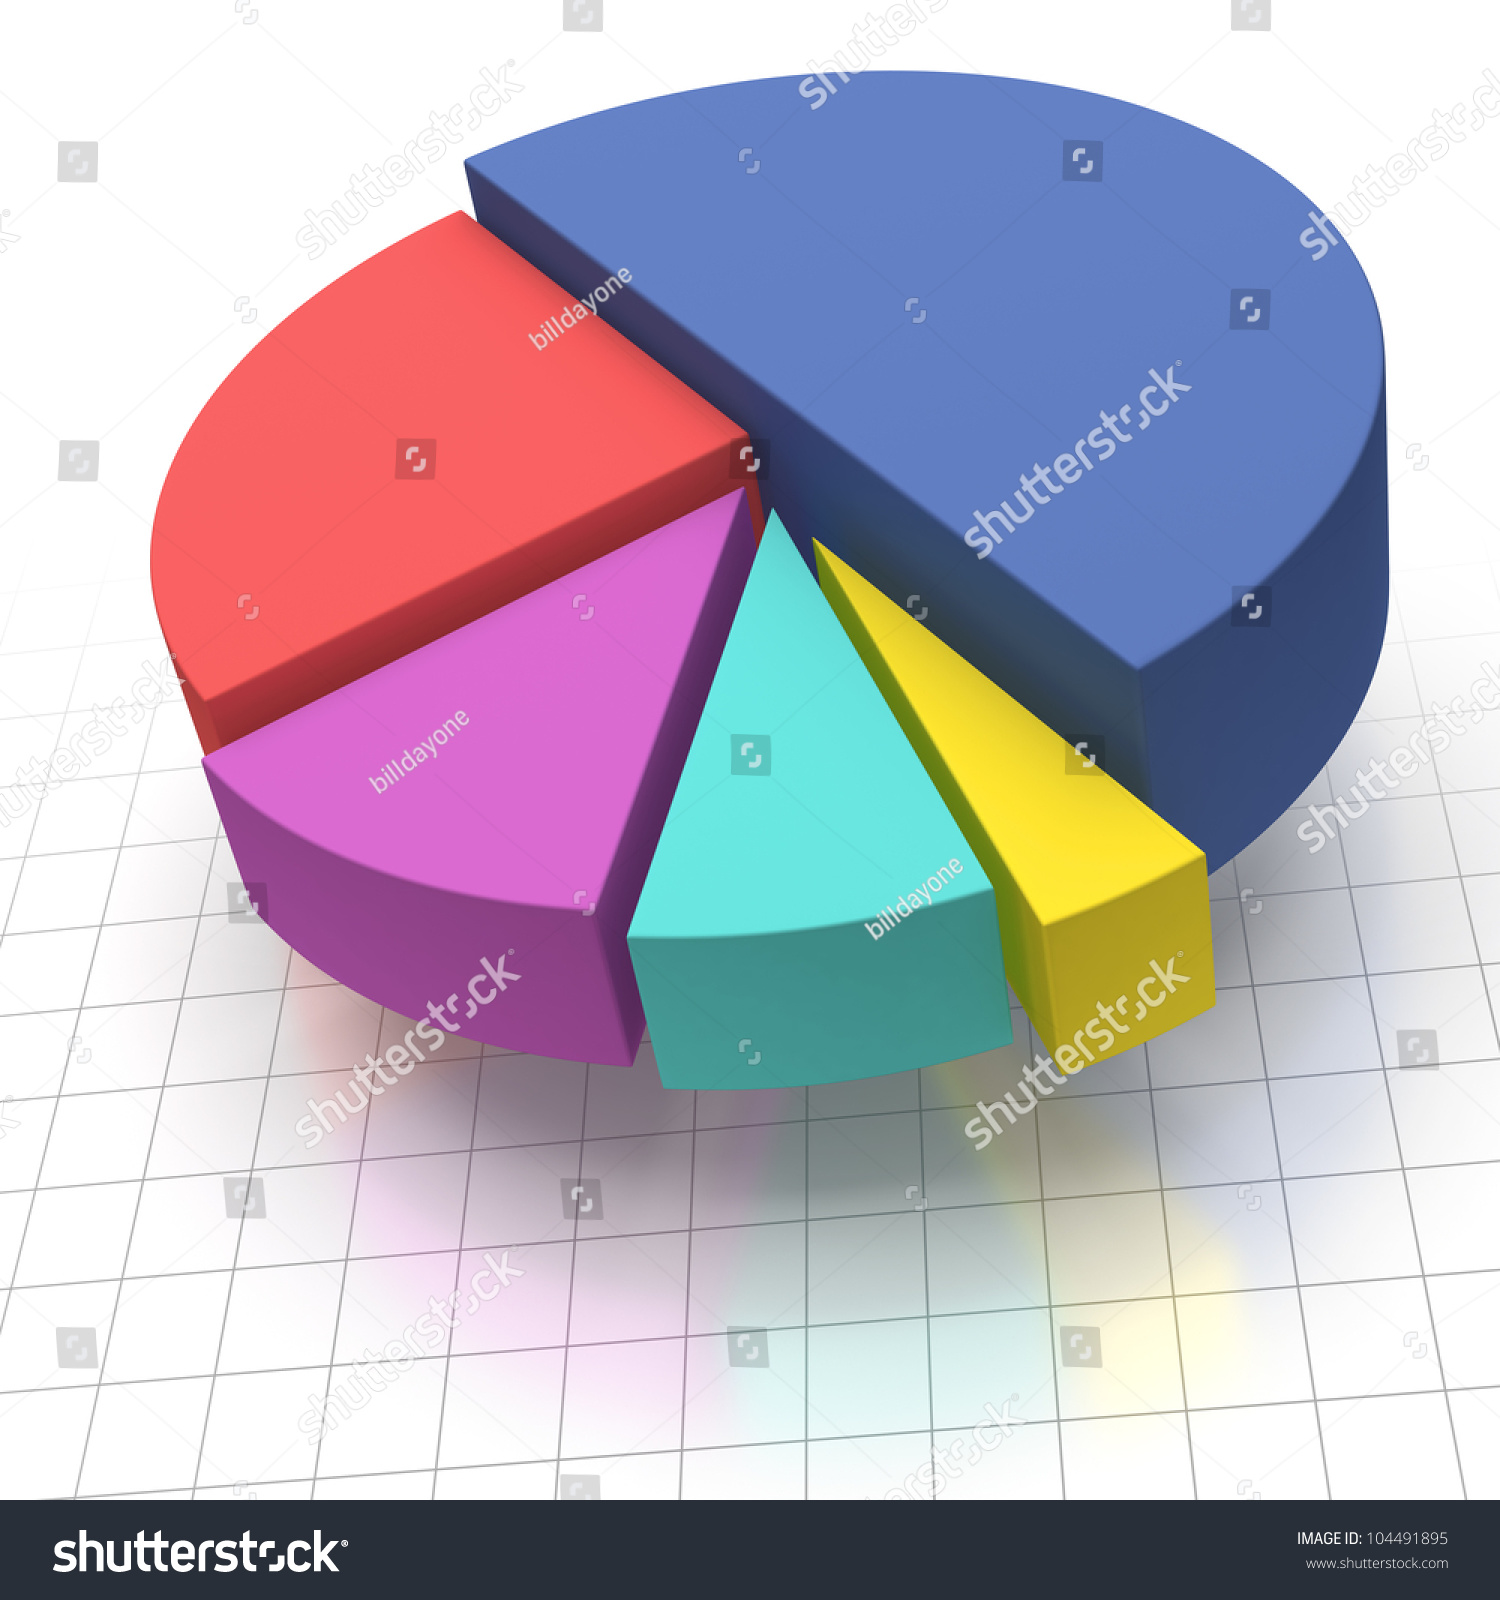 pie chart in research paper